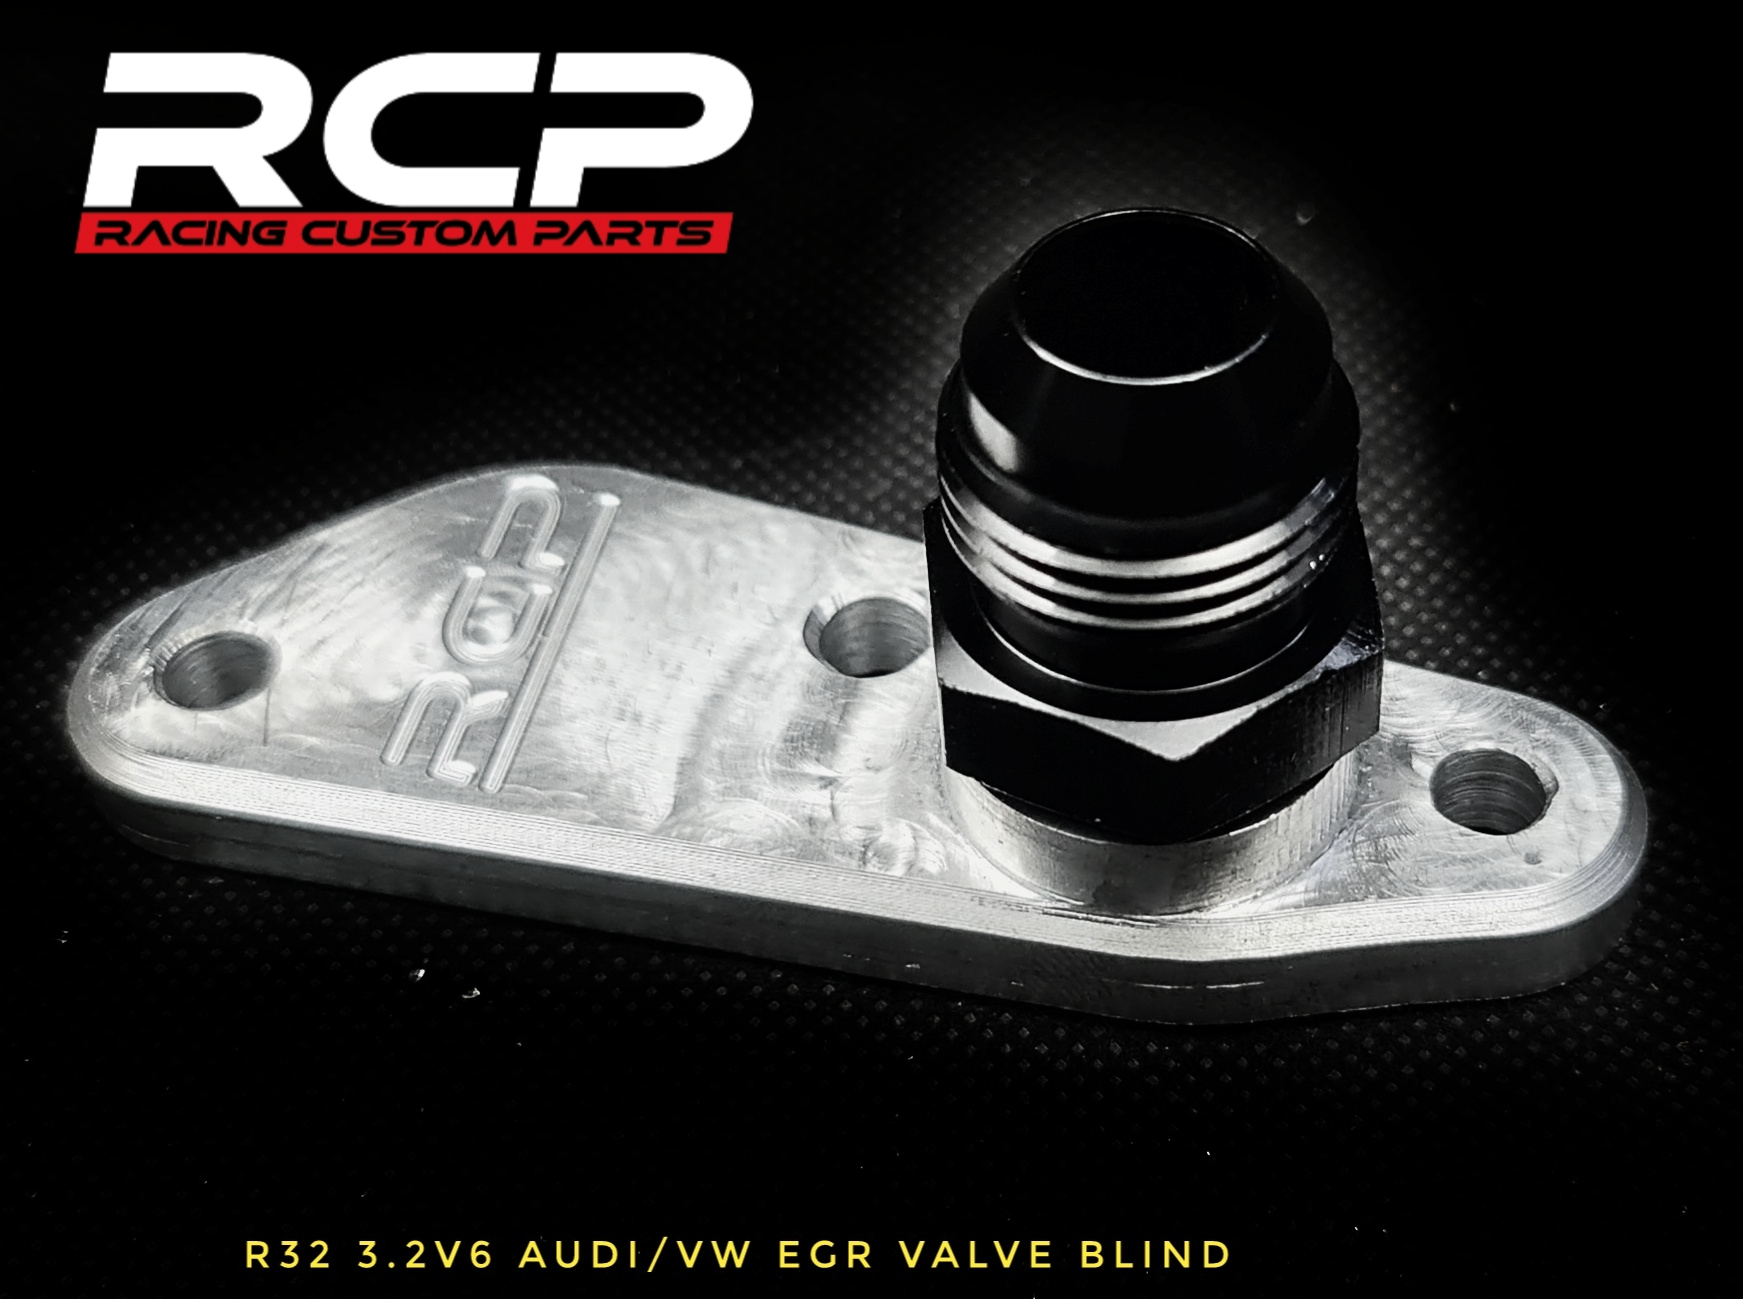 r32 audi vw turbo egr valve blind racing custom parts billet cnc